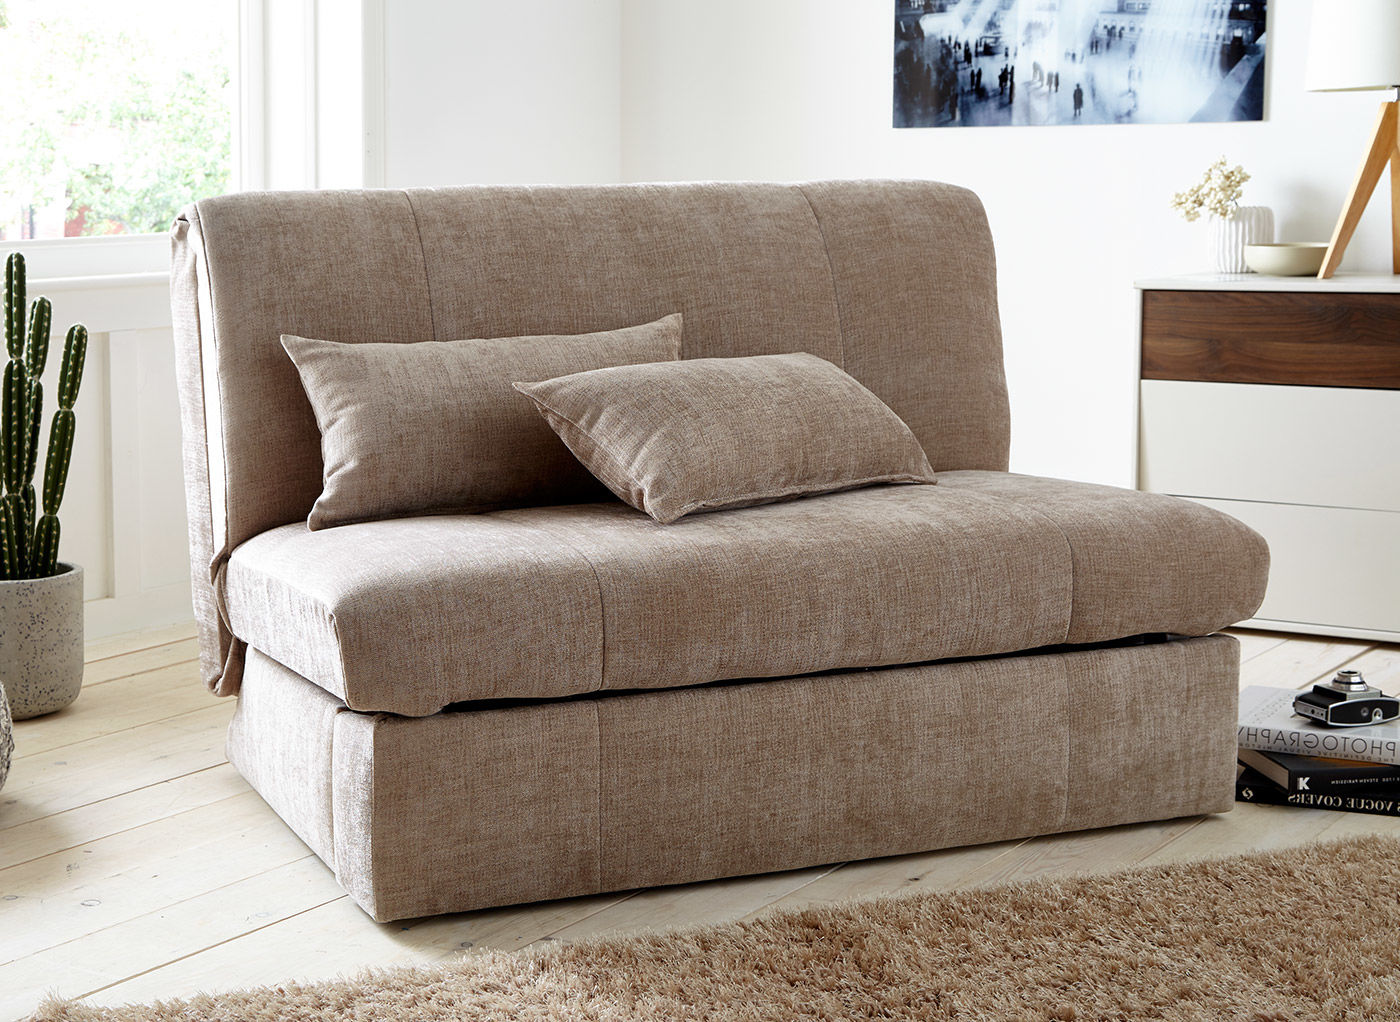 Picture of: Kelso Sofa Bed Small Double Nutmeg Fabric Bed Sava